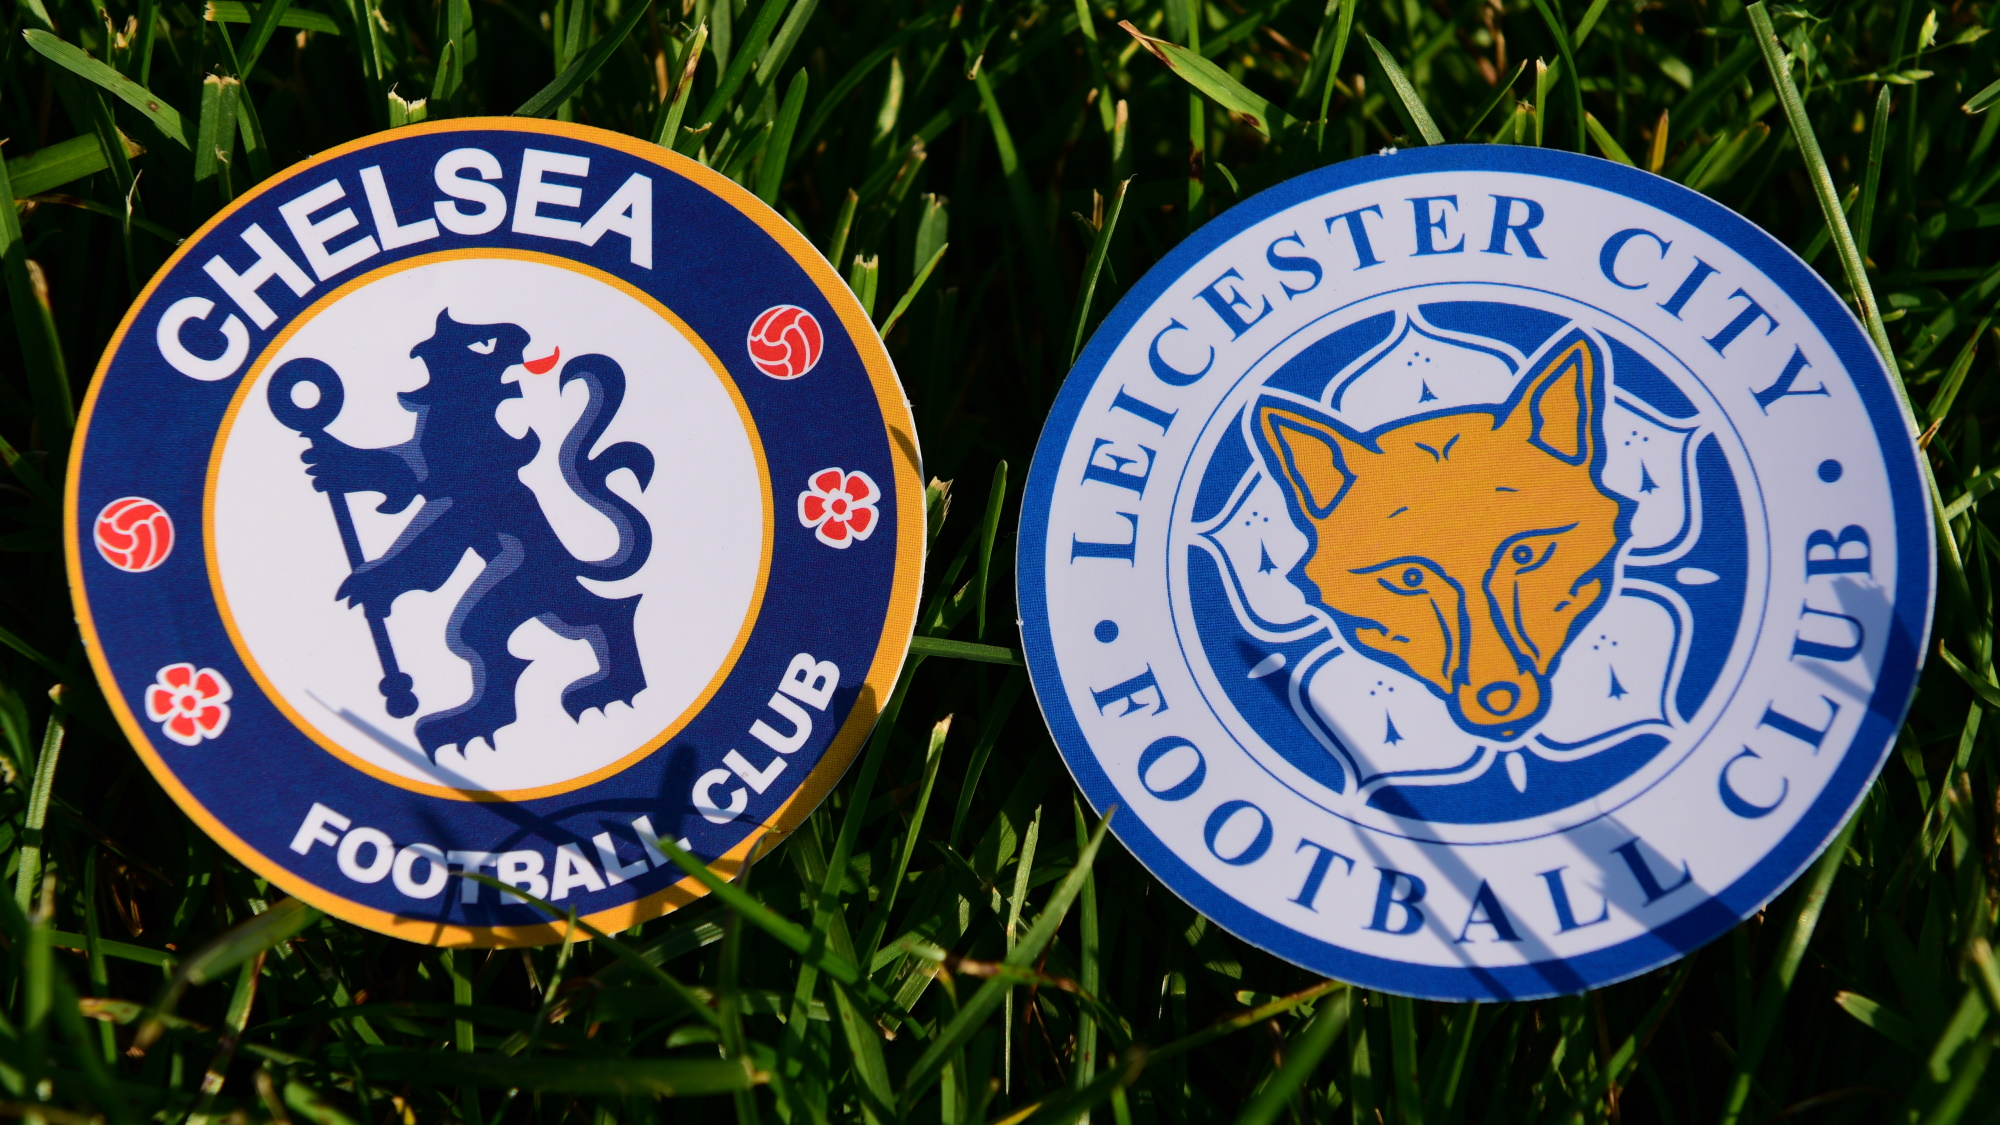 Chelsea vs. Leicester City | Team News, Predictions, Possible Line-ups & More